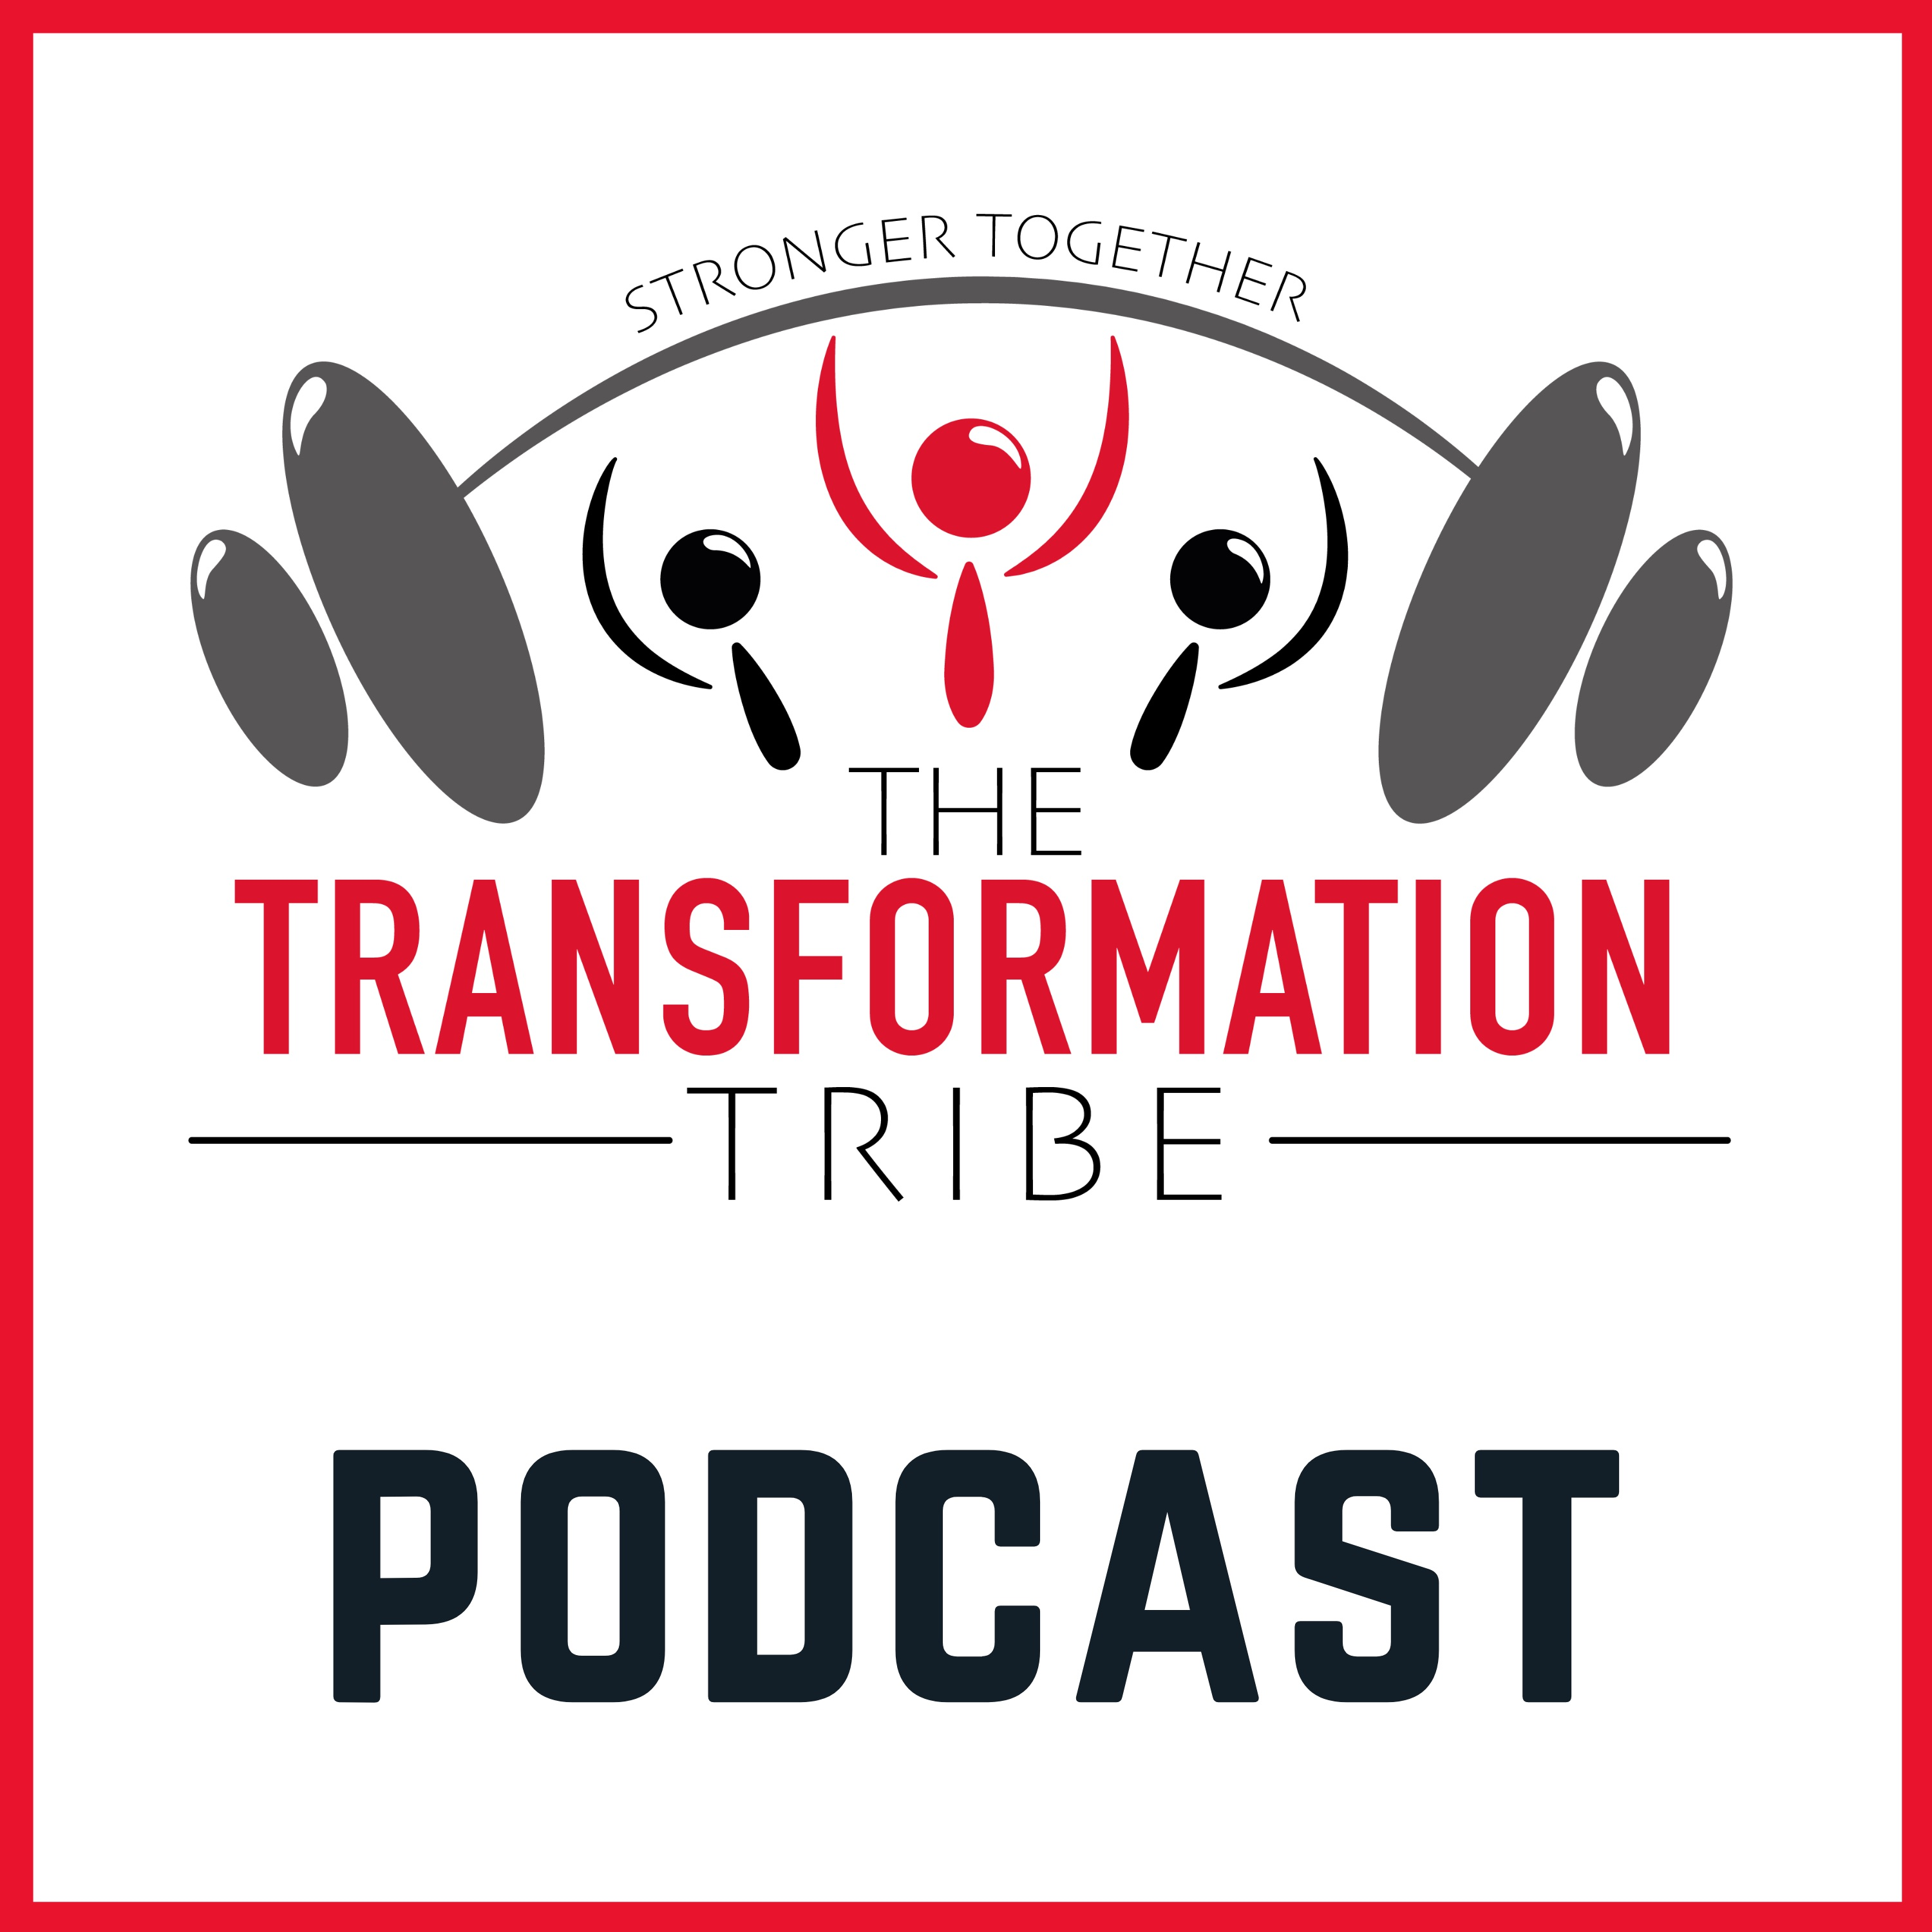 The Transformation Tribe